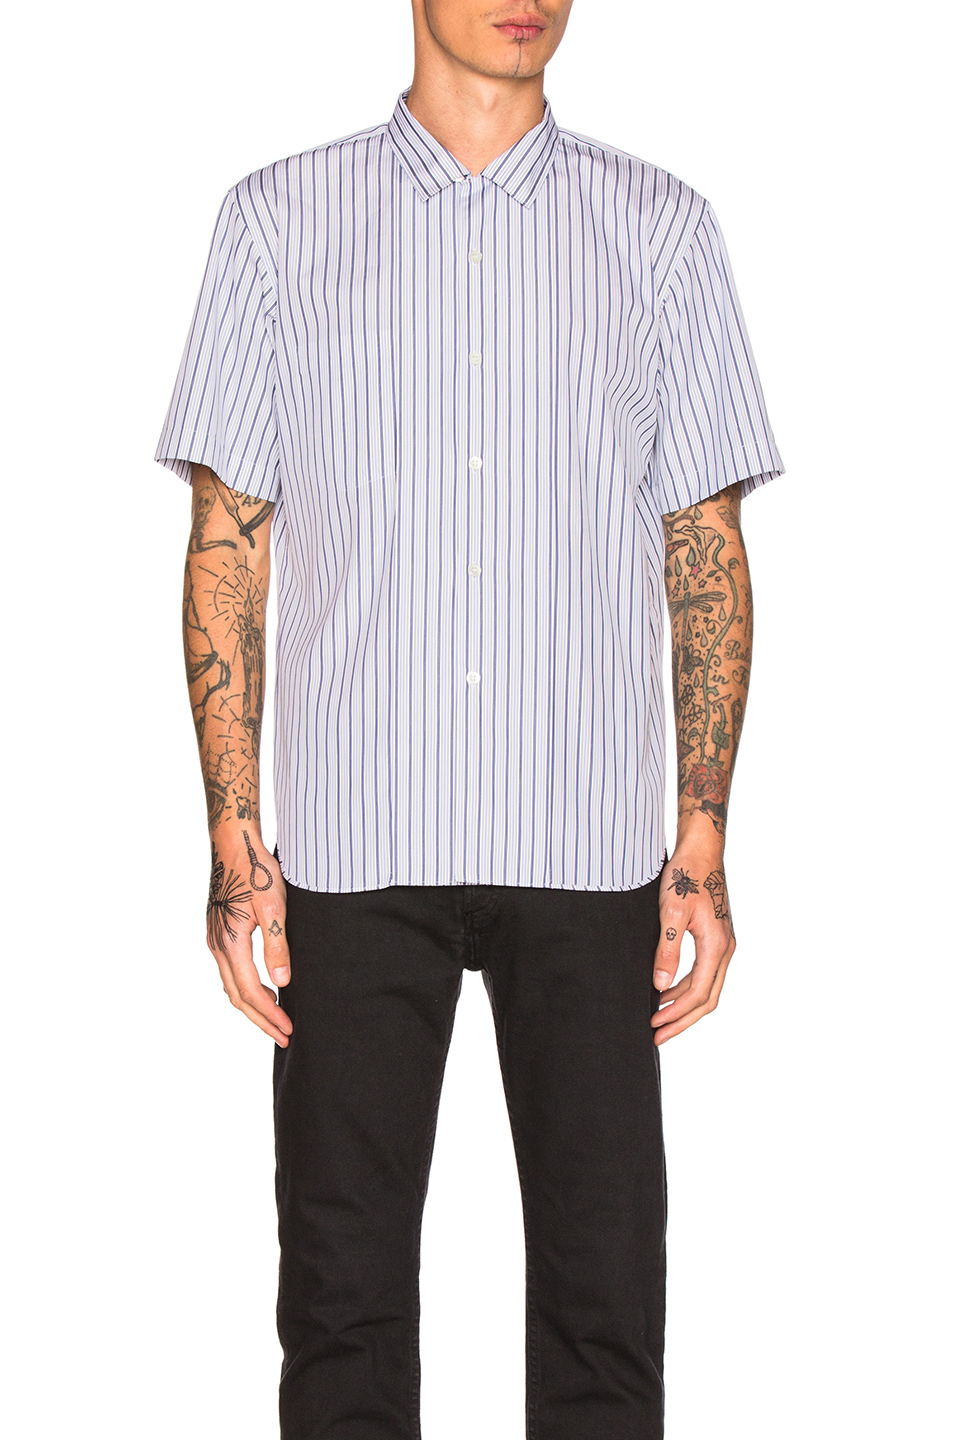 Comme Des Garcons Homme Plus Cotton Broad Stripe Shirt in White,Blue,Stripes